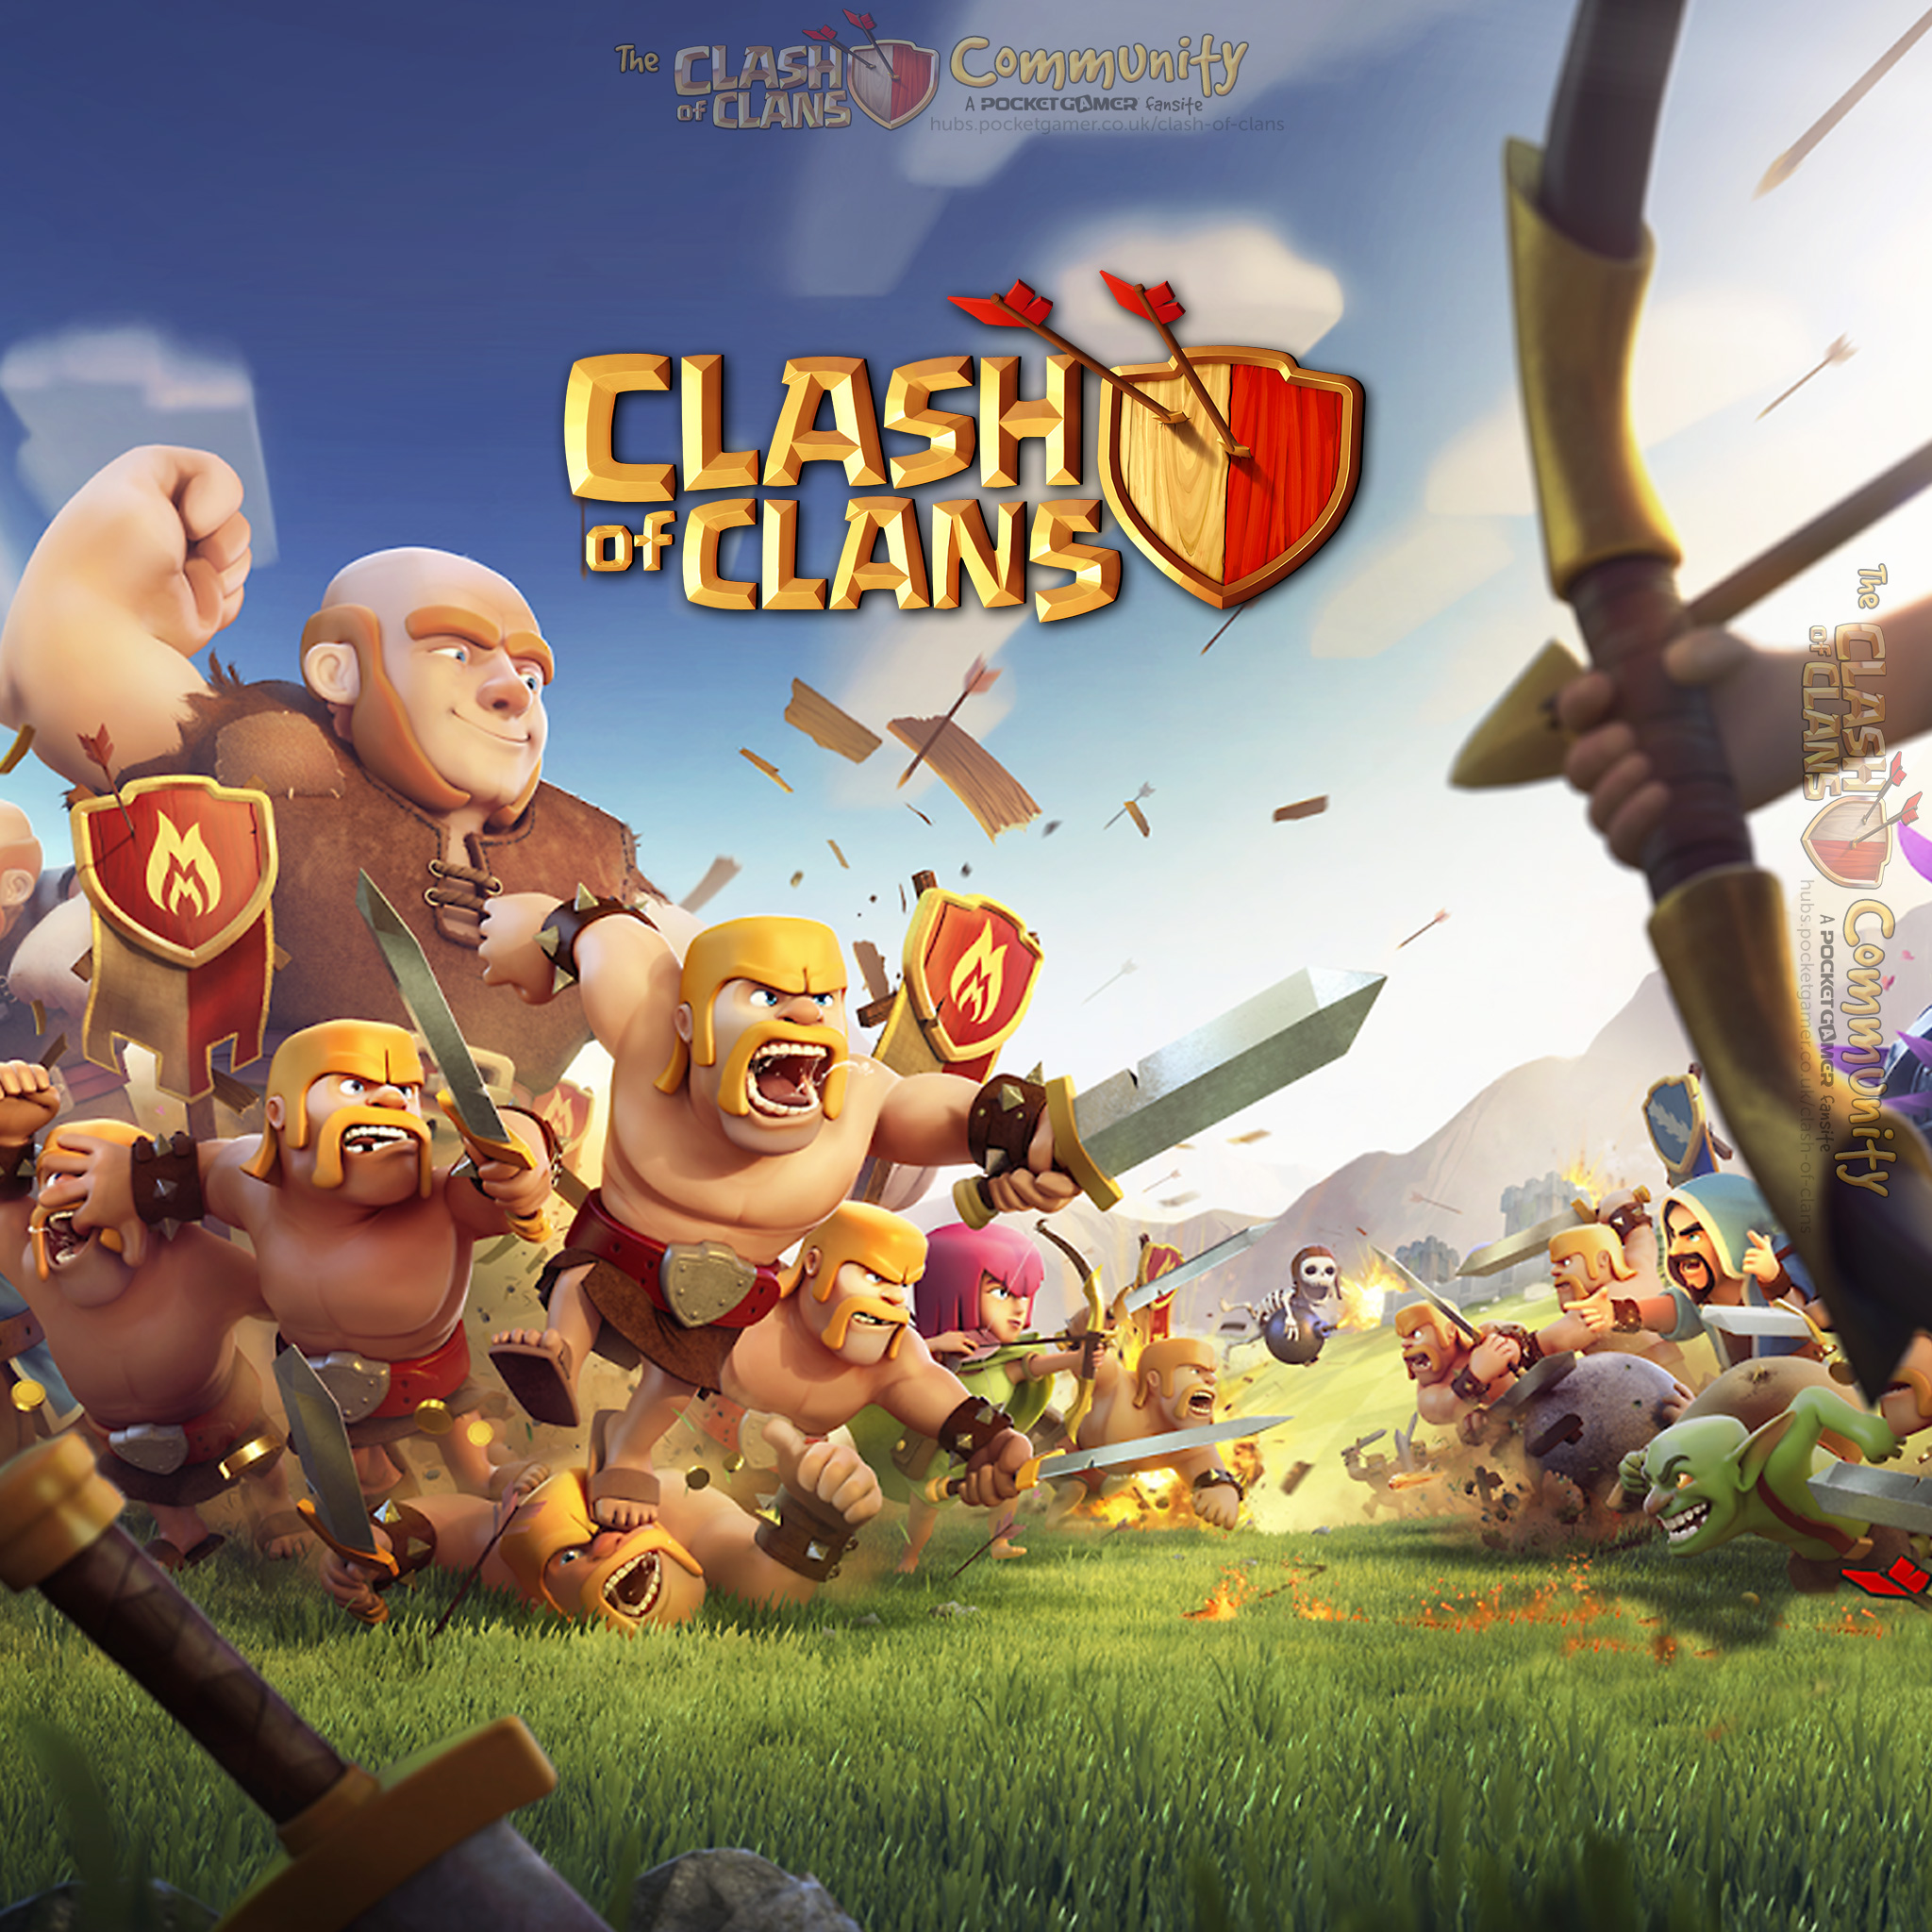 Wallpapers Clash of Clans Pocket Gamer Game Hub 2048x2048